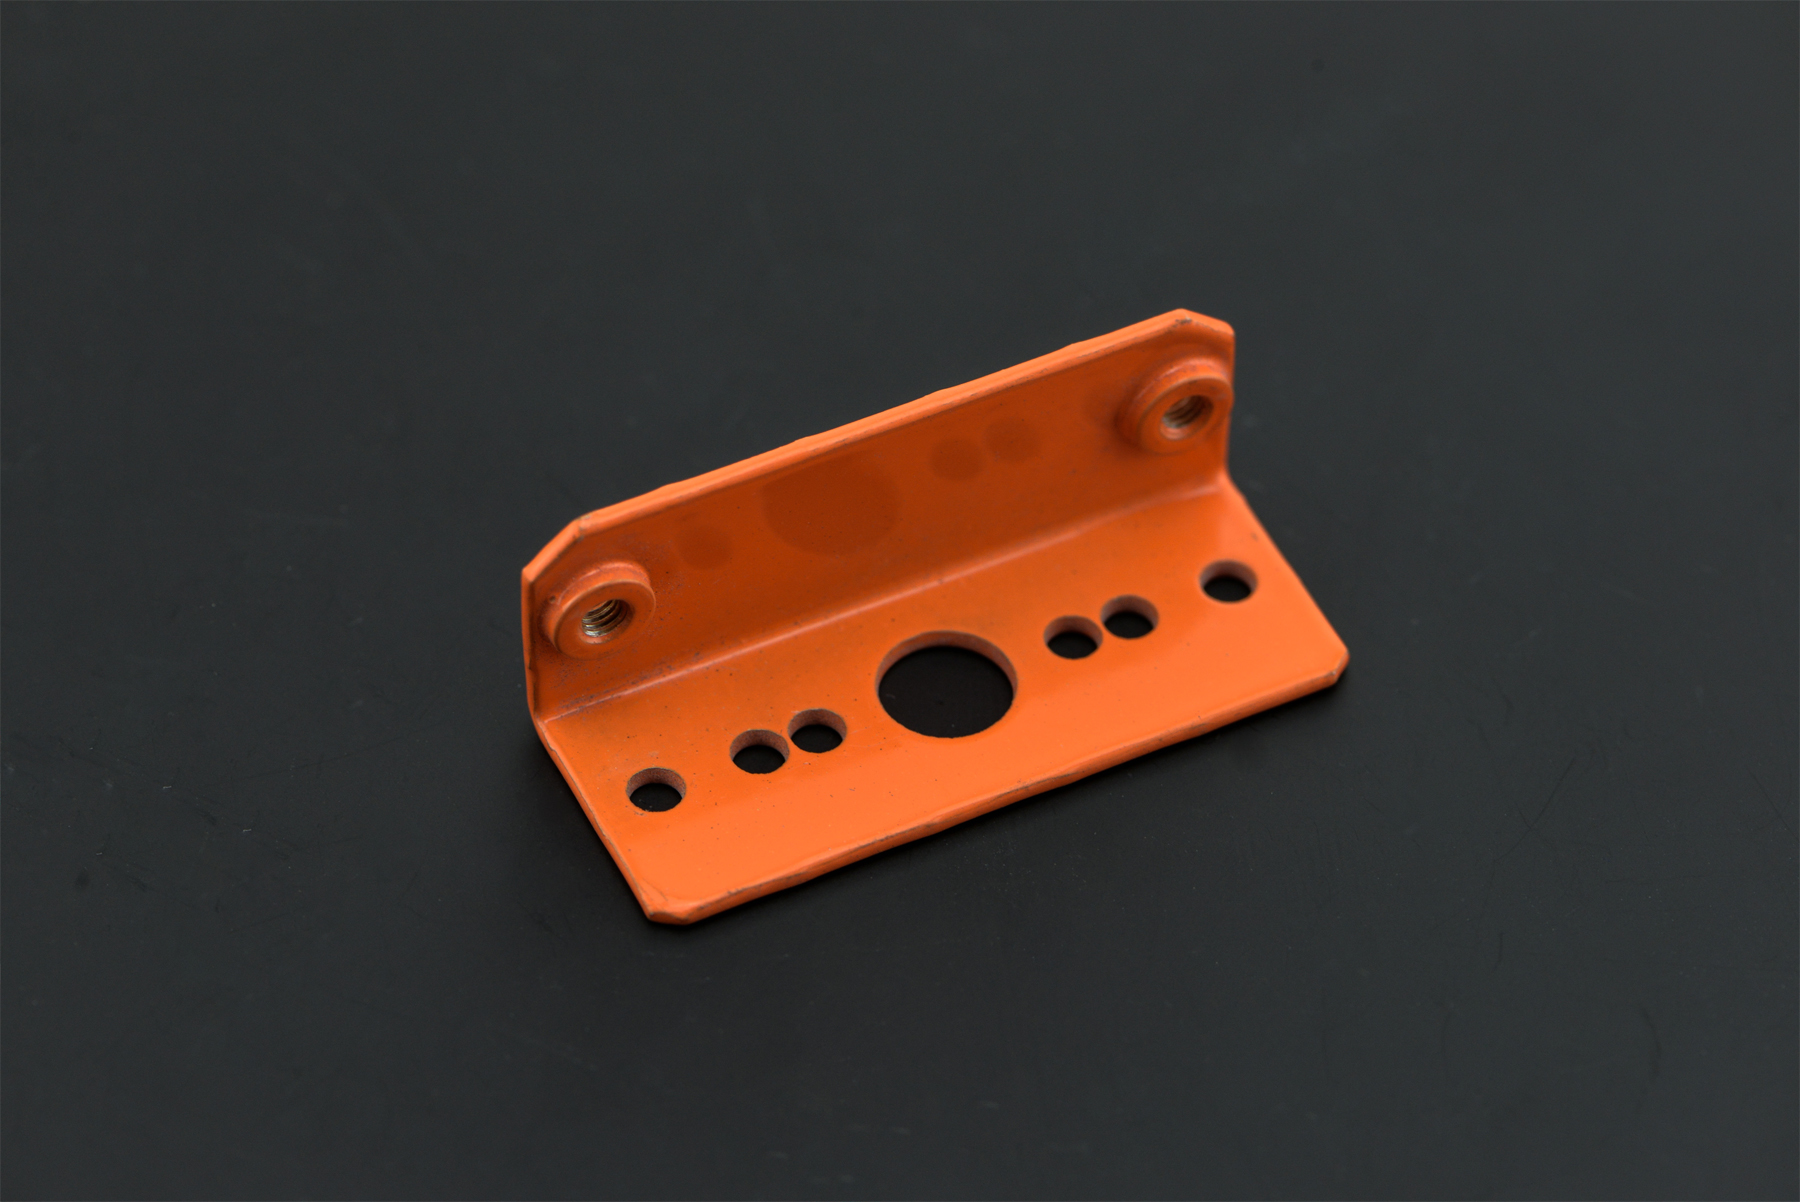 Sharp IR Sensor Mounting Bracket - GP2Y0A21/GP2Y0A02YK (Orange)